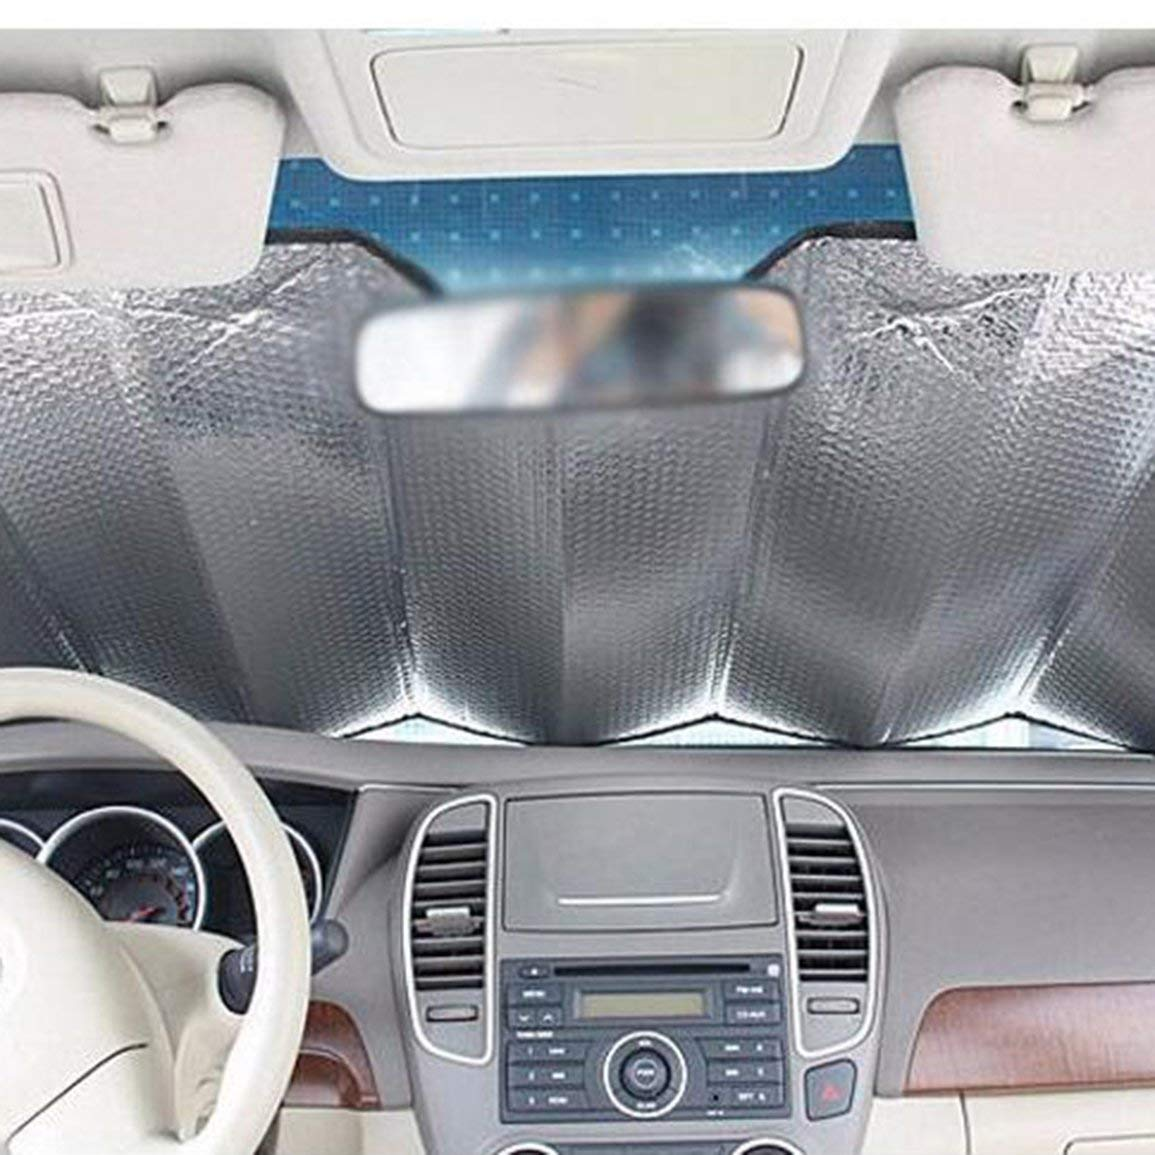 Fantasyworld Car Windshield Sunshades Cover Casual Foldable Cover Front Rear Sun Reflective Shade Car Sun Block Sunshade